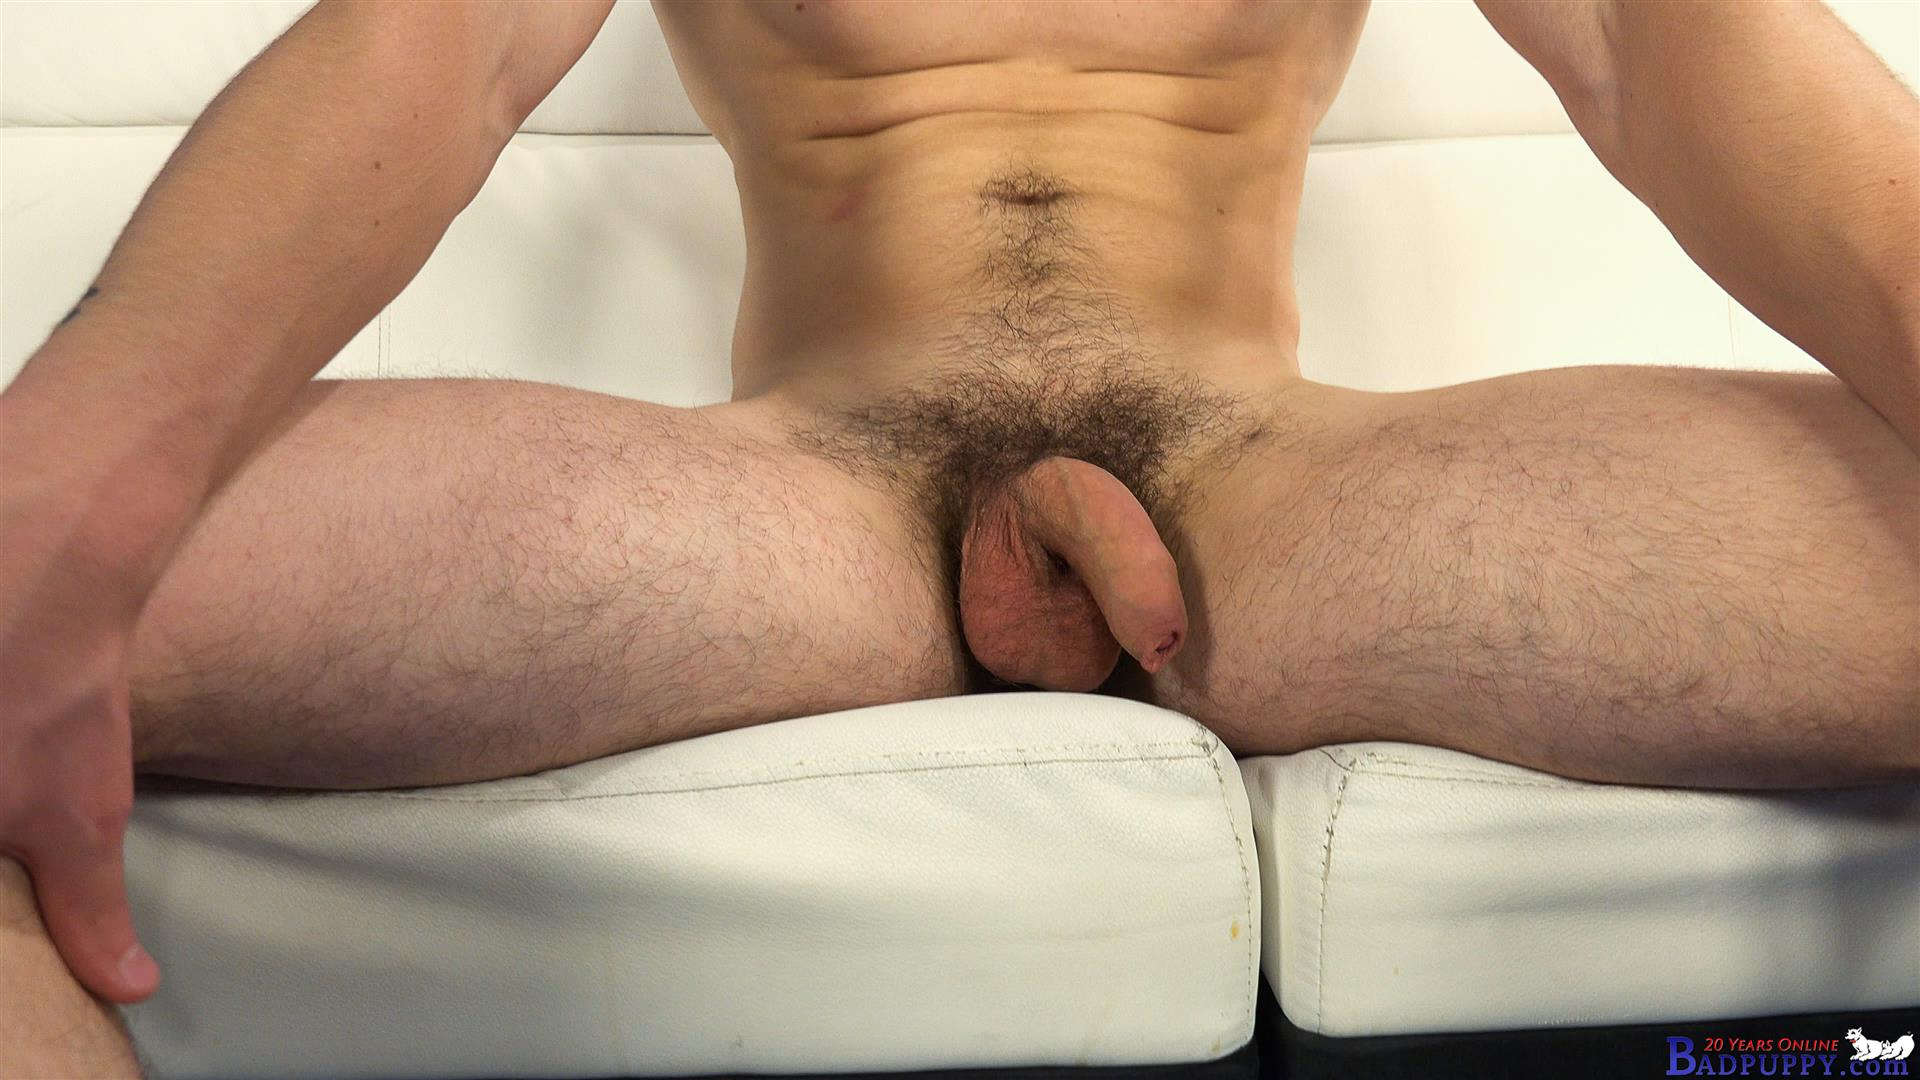 Valer-Starek-Badpuppy-Masturbation-Big-Uncut-Cock-Hairy-Ass-Amateur-Gay-Porn-04 Young Czech Guy Auditions For Gay Porn With His Big Uncut Cock And Hairy Ass